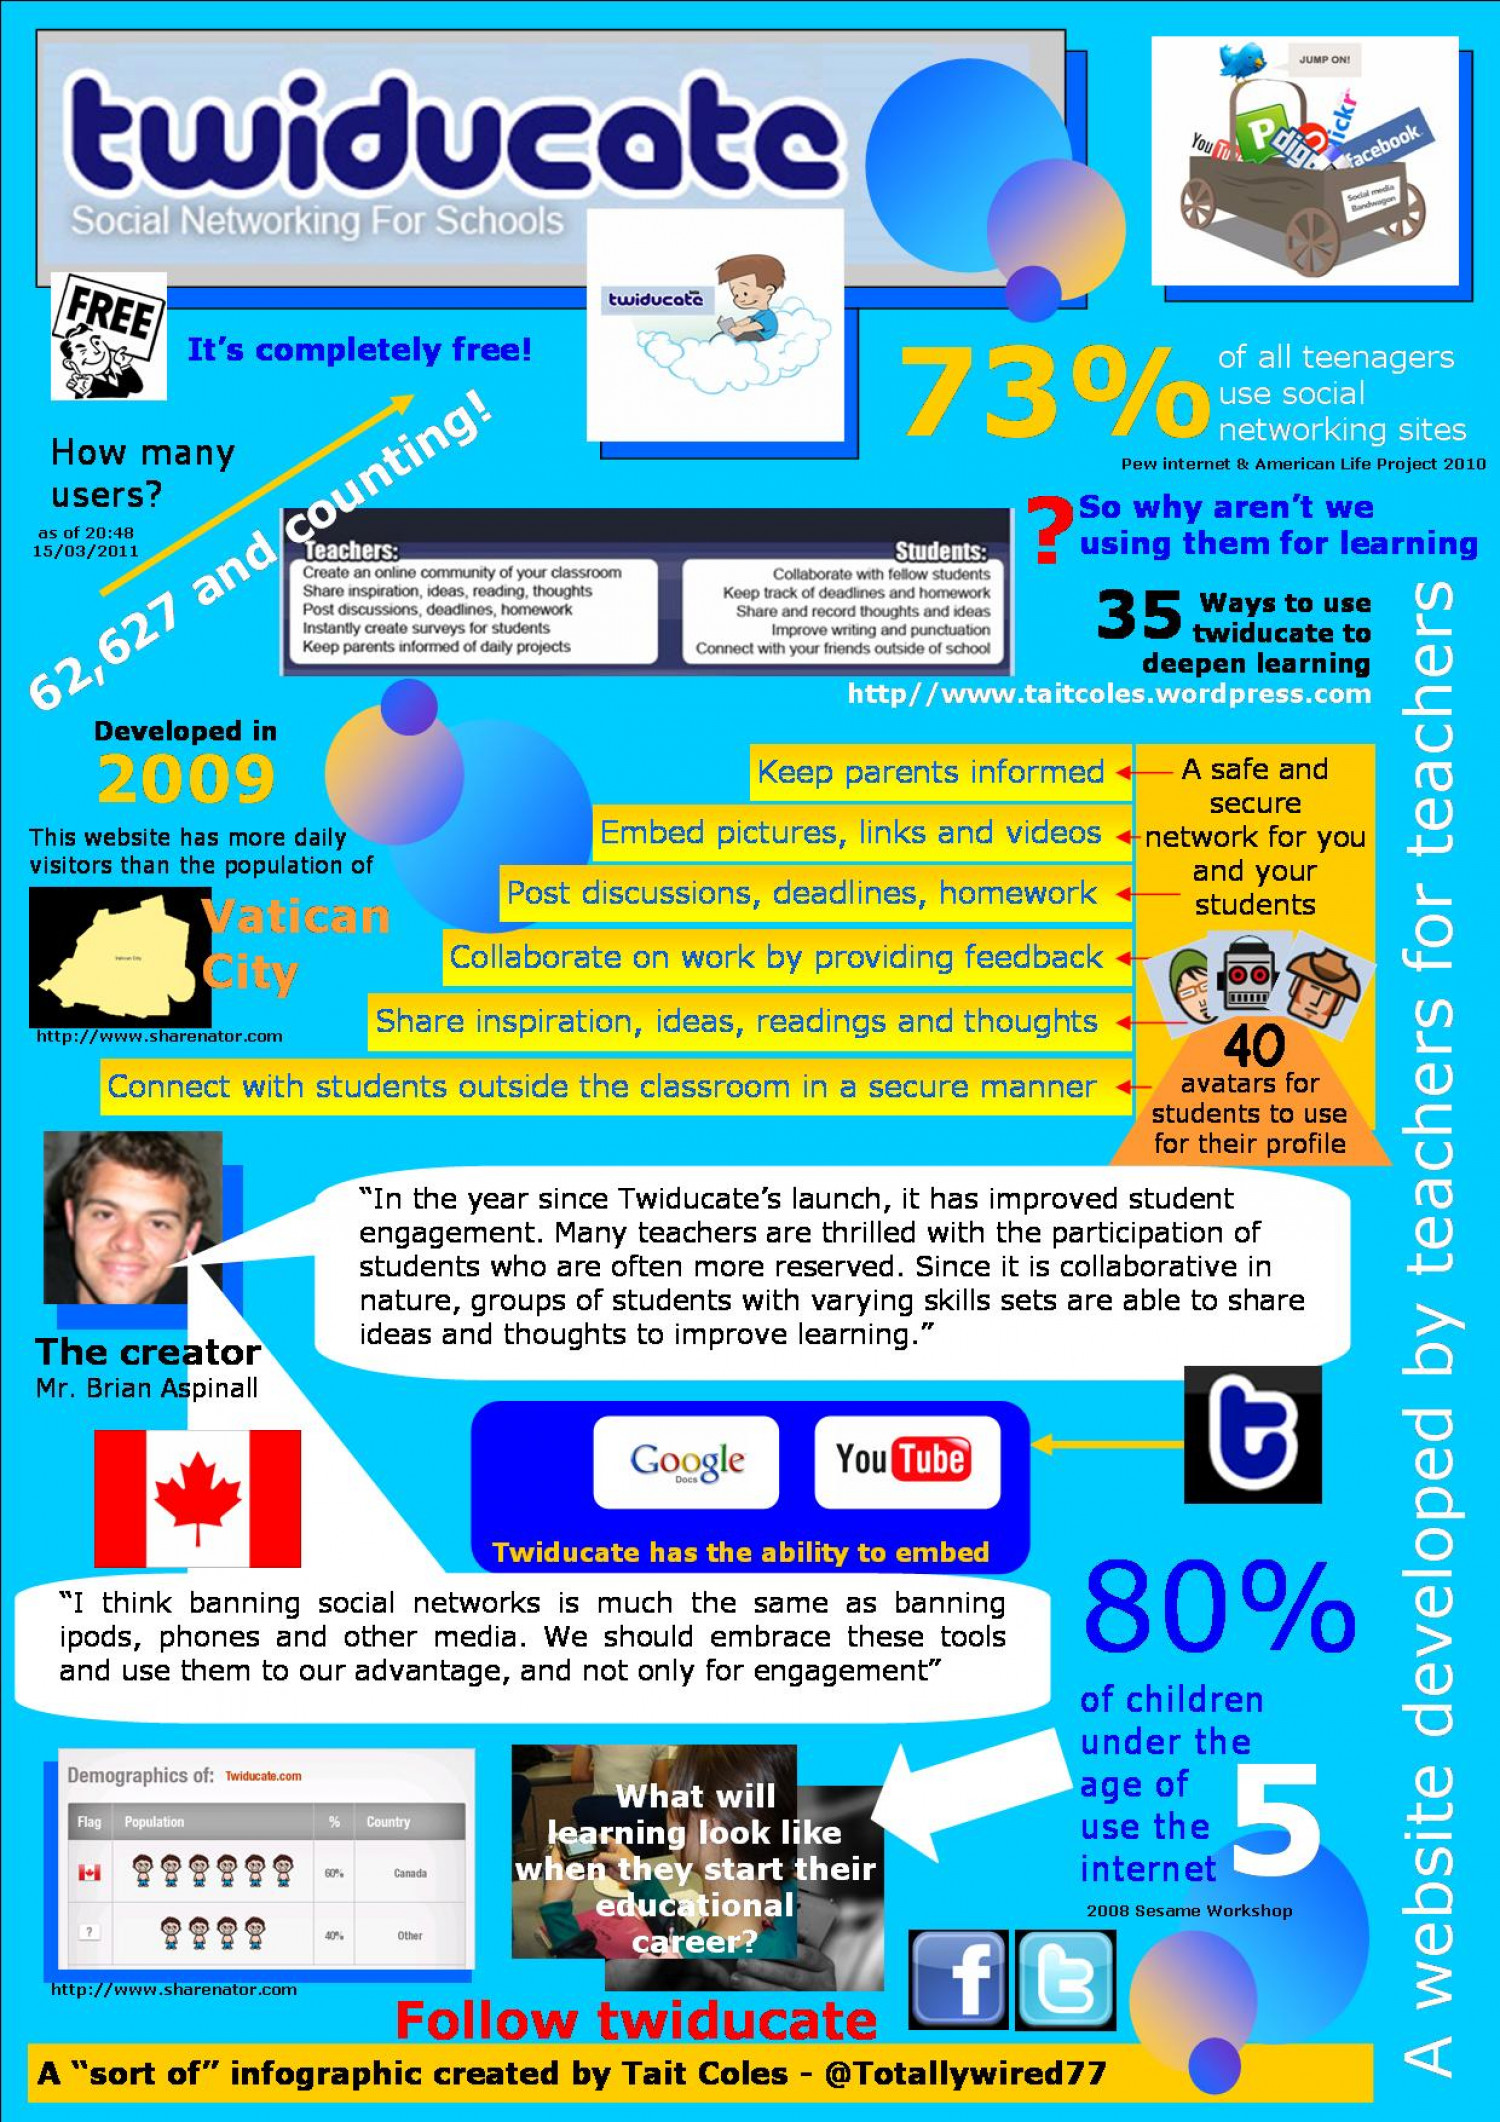 Twiducate: Social Networking for Schools Infographic